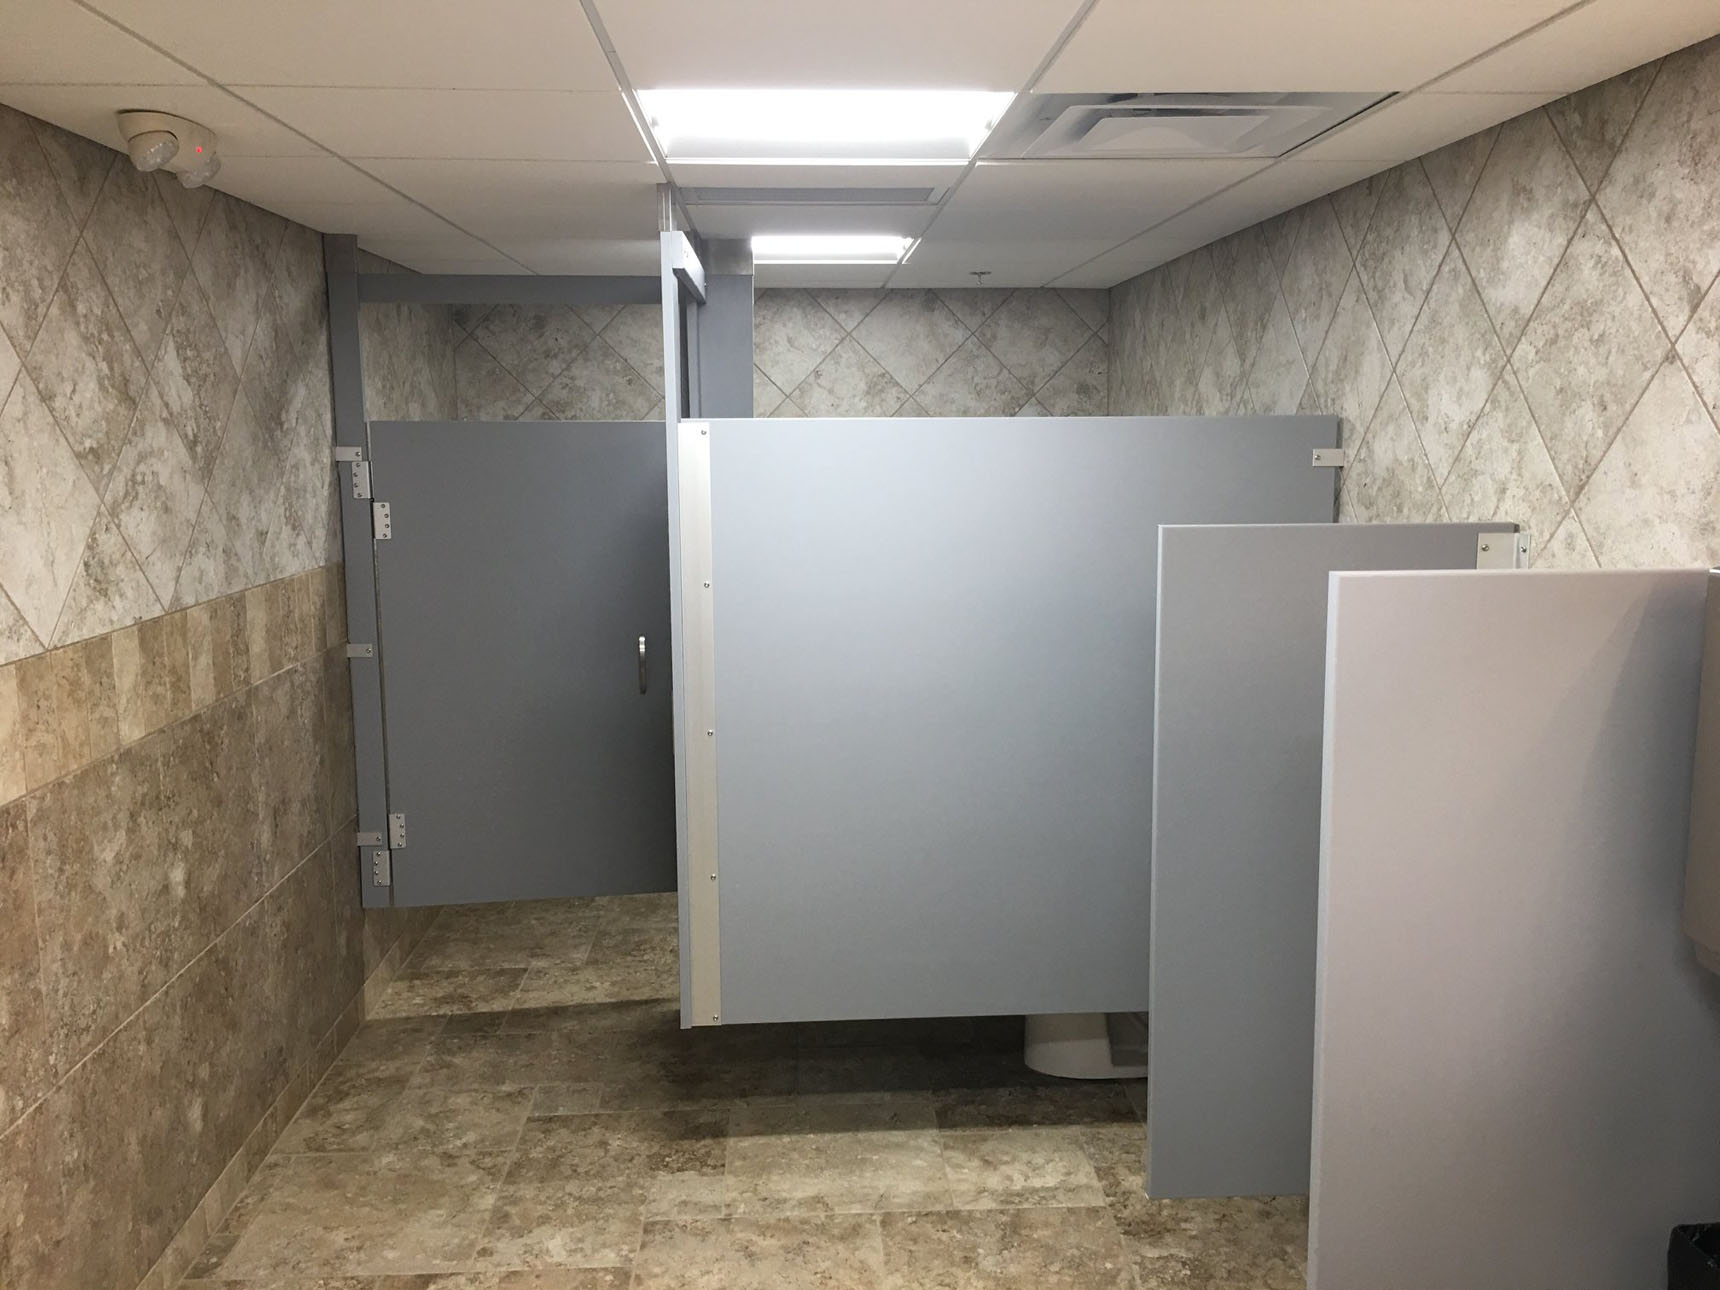 MCCFA Bathroom Upgrades 2